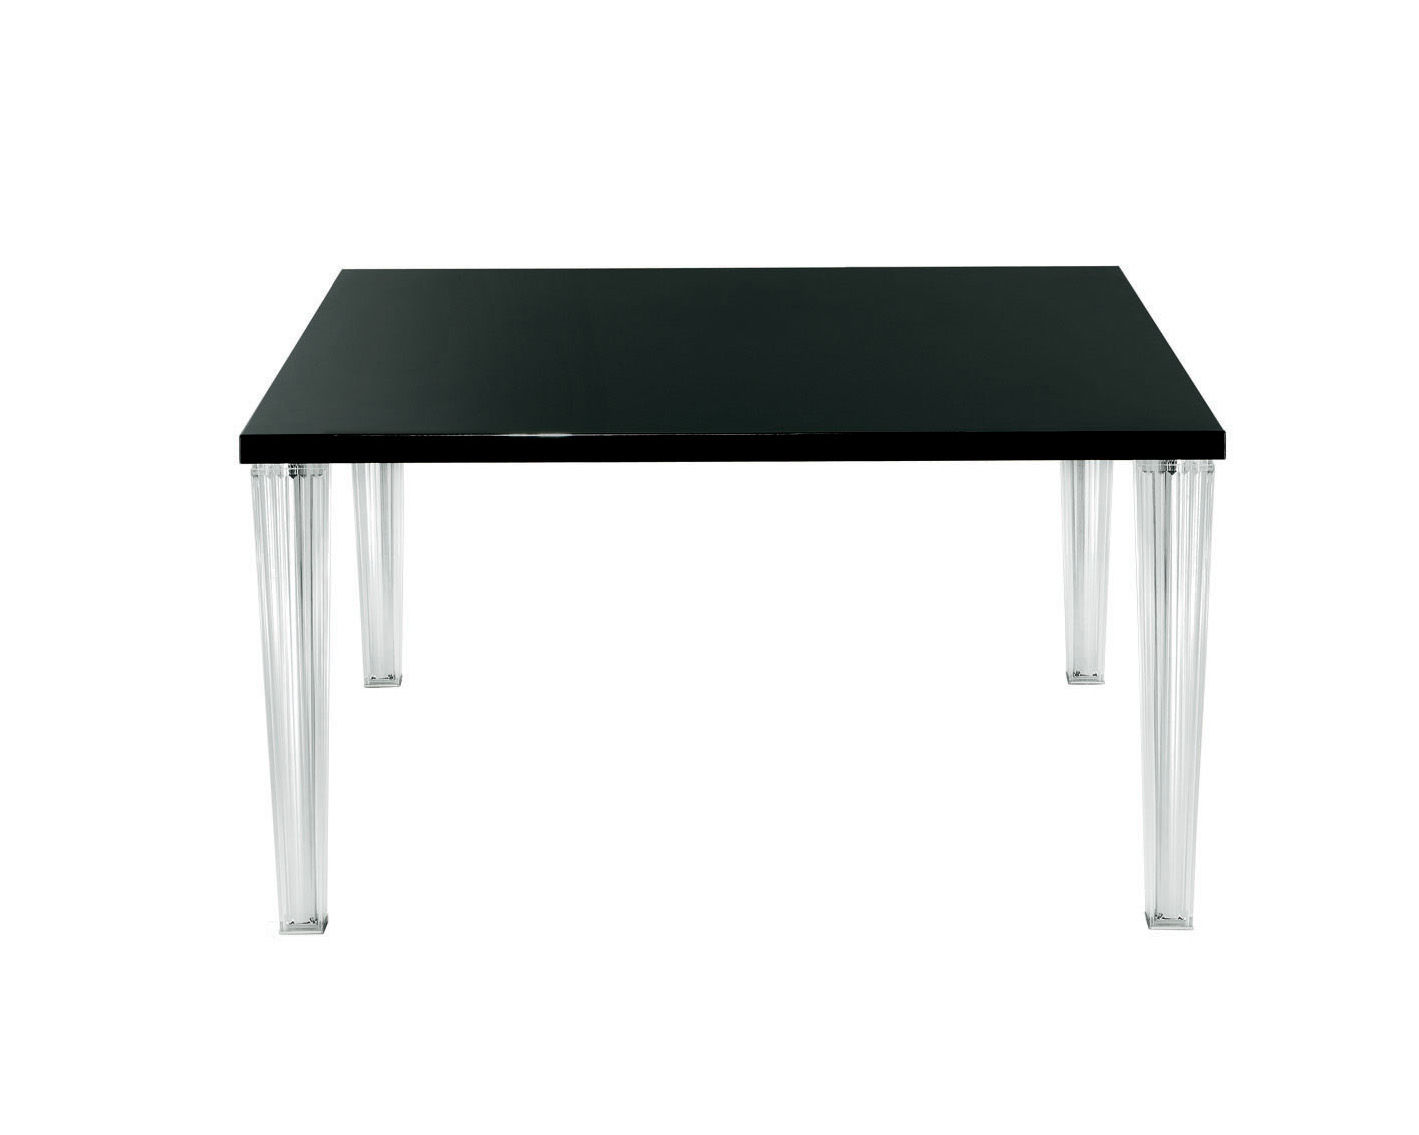 Furniture - Dining Tables - Top Top Square table - 130 cm - Glass top by Kartell - Black glass - Glass, PMMA